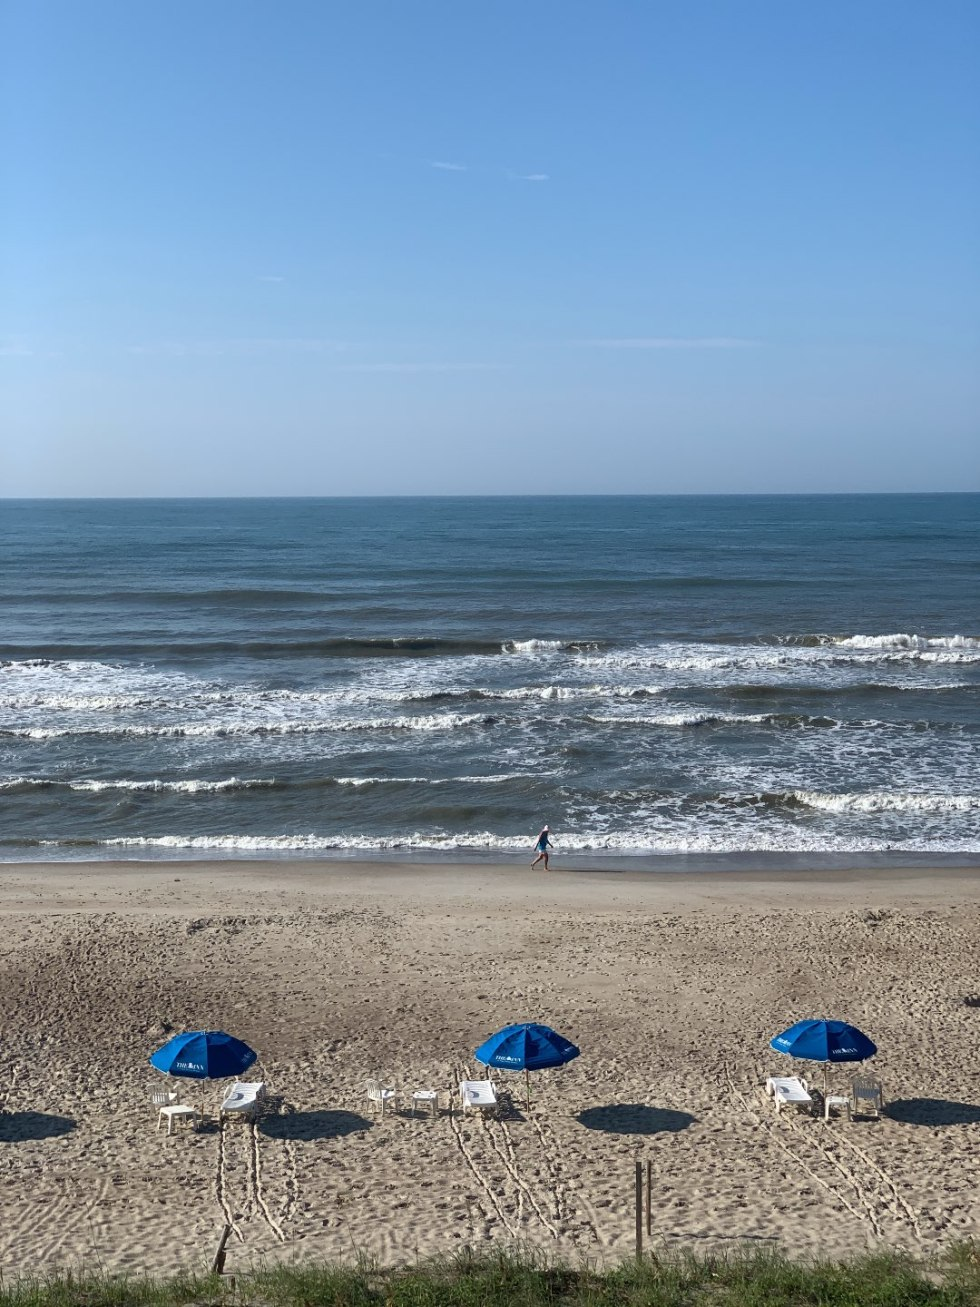 Most Popular Posts of 2020 - I'm Fixin' To - @imfixintoblog |Most Popular Posts by popular NC lifestyle blog, I'm Fixin' To: image of blue shade umbrellas and white lounge chairs on a beach.